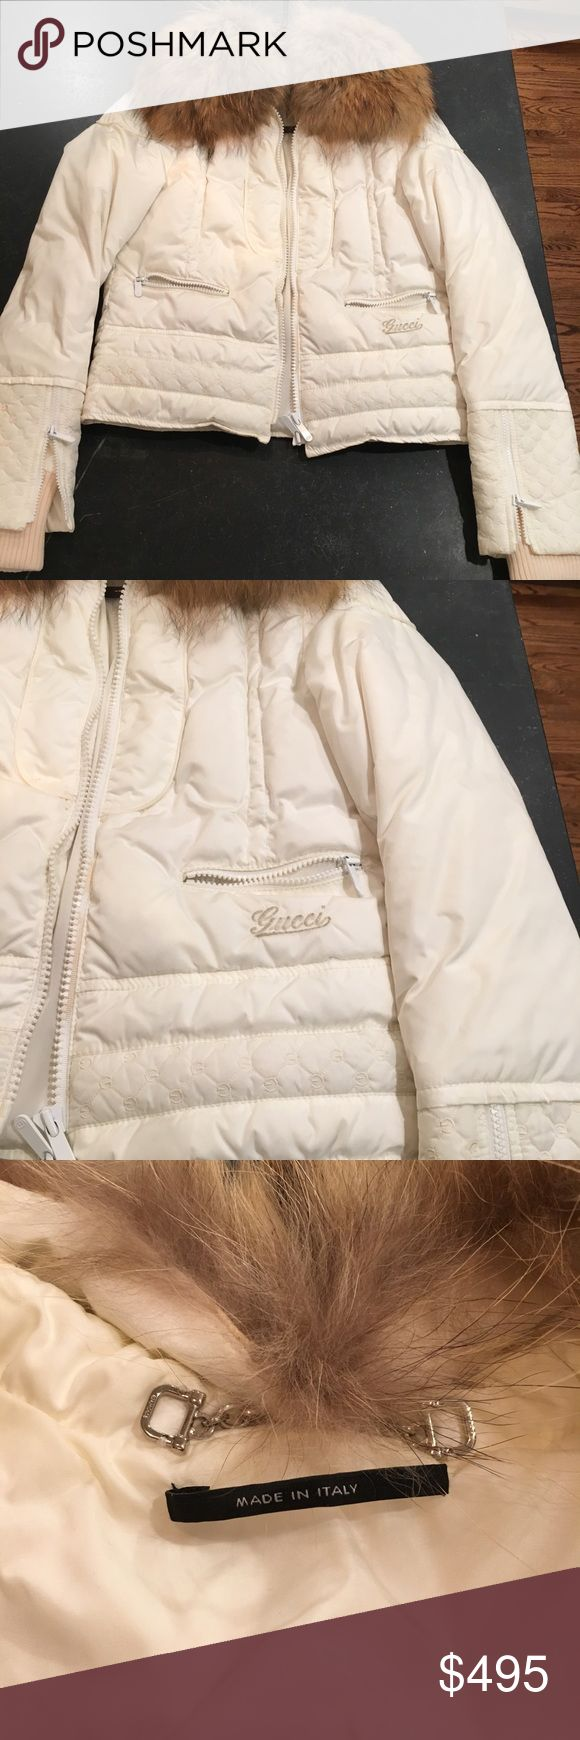 Gucci -Women Size Small (40) White Jacket with Fur Size Small (40) Women's  Gucci Winter White Jacket with Fox Fur Trim. Gucci zippers on sleeves and pockets with classic GG appliqués on sleeves. Gucci Garment Bag included. Lightly Worn-like new! Perfect for Fall/Winter! Gucci Jackets & Coats Puffers